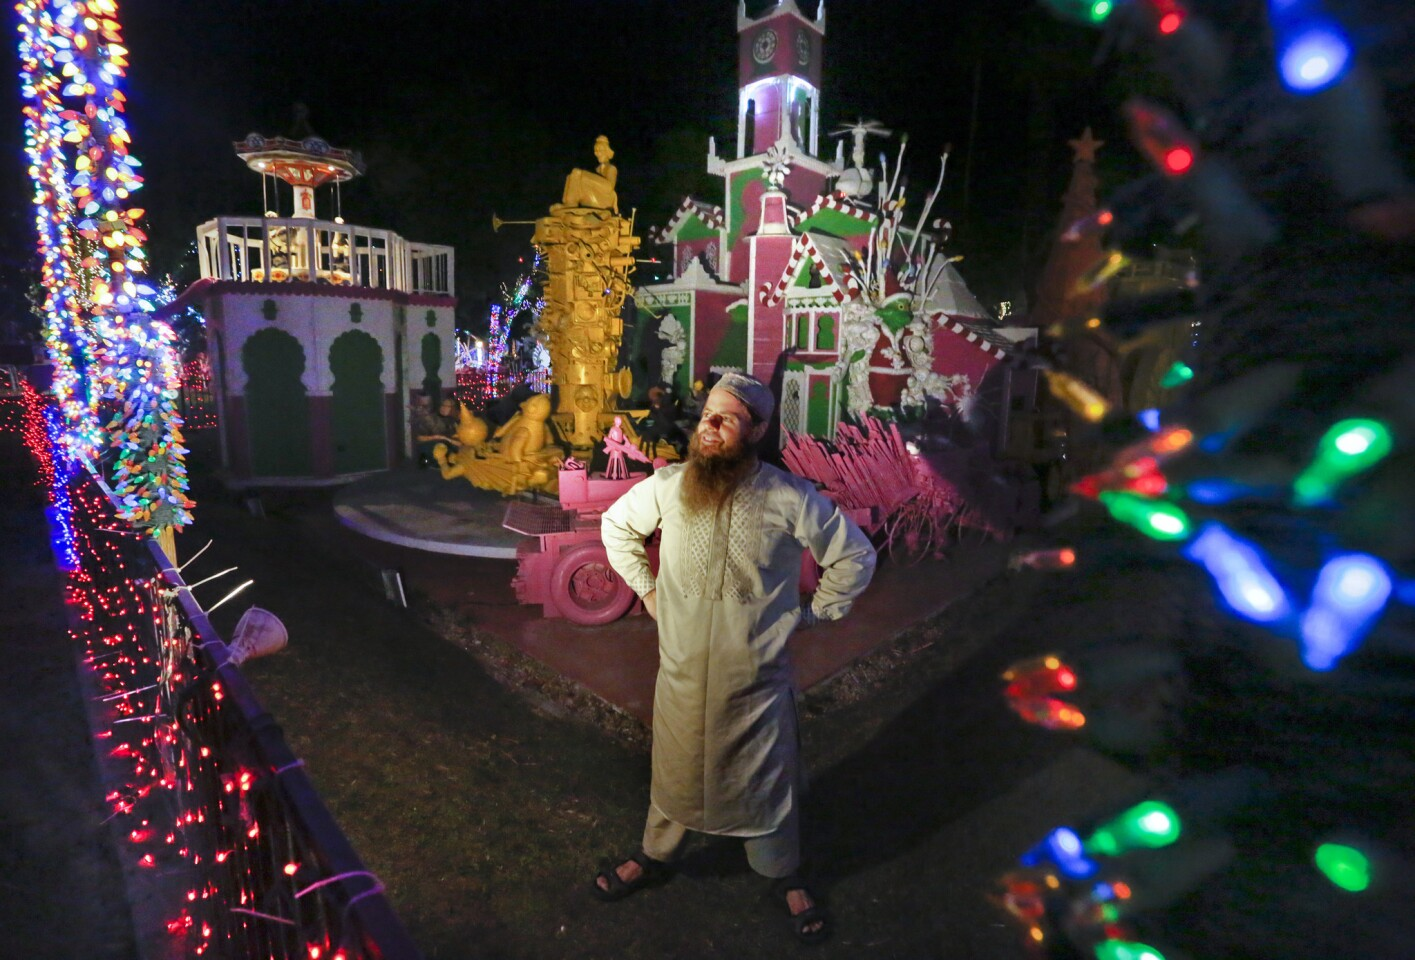 Artist Kenny Irwin Jr. checks the lights in front of the Candy Cane Palace area of his elaborate and quirky Robolights display in Palm Springs.